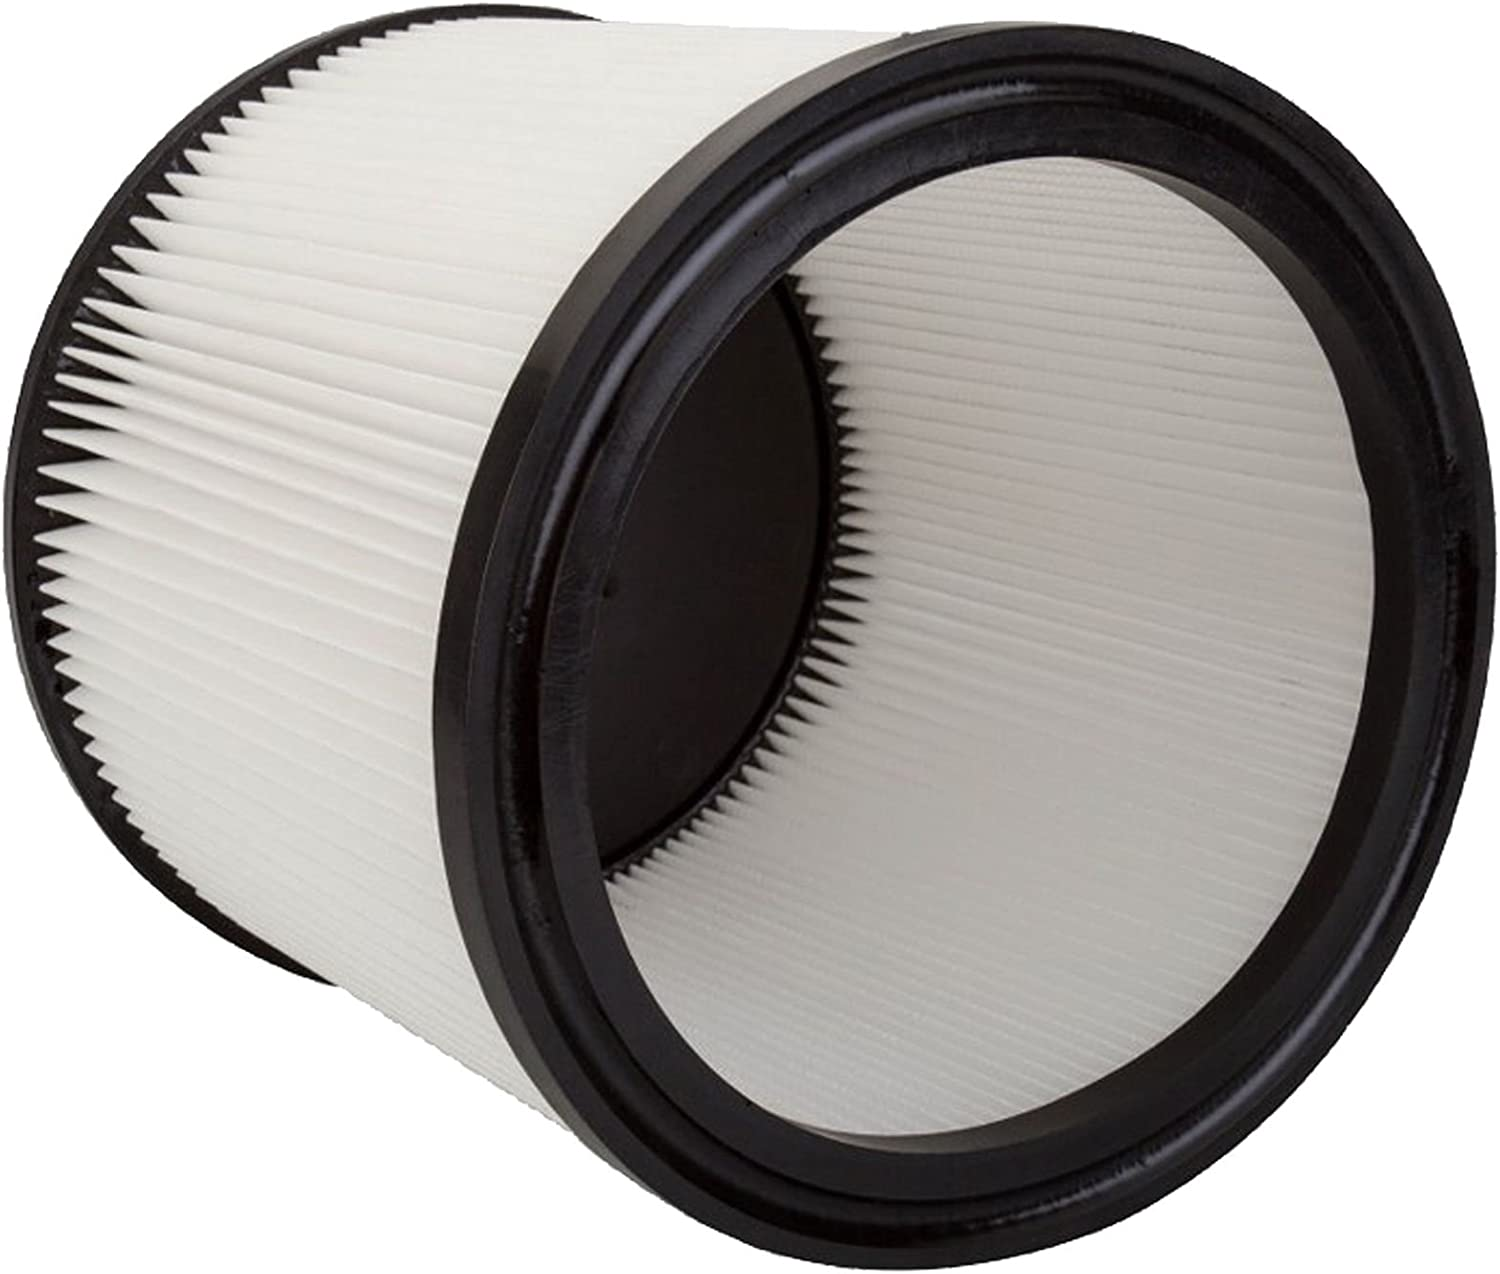 Hepa Filter Wickes Canister Wet and Dry